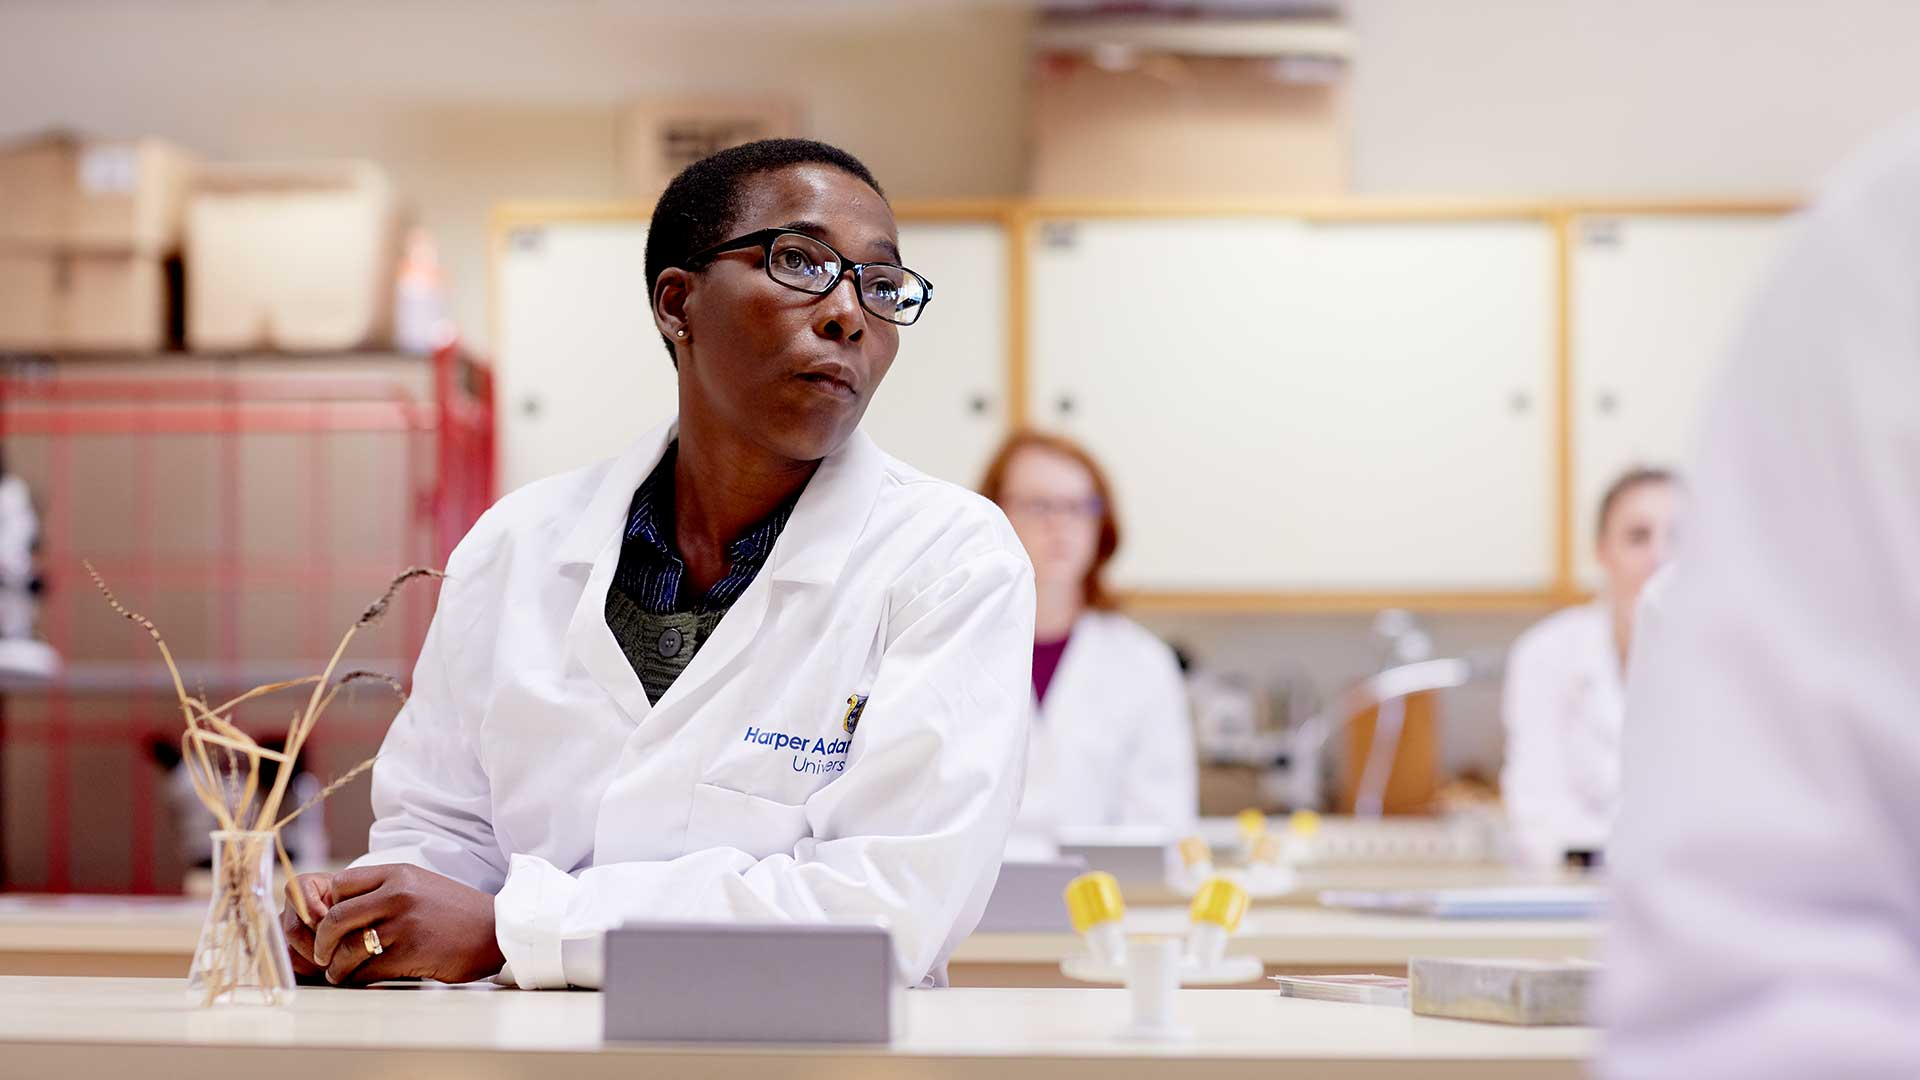 A black female student wearing glasses and a white lab coat, sitting in one of the science laboratories. Two other students can be seen in the background, but they are out of focus.